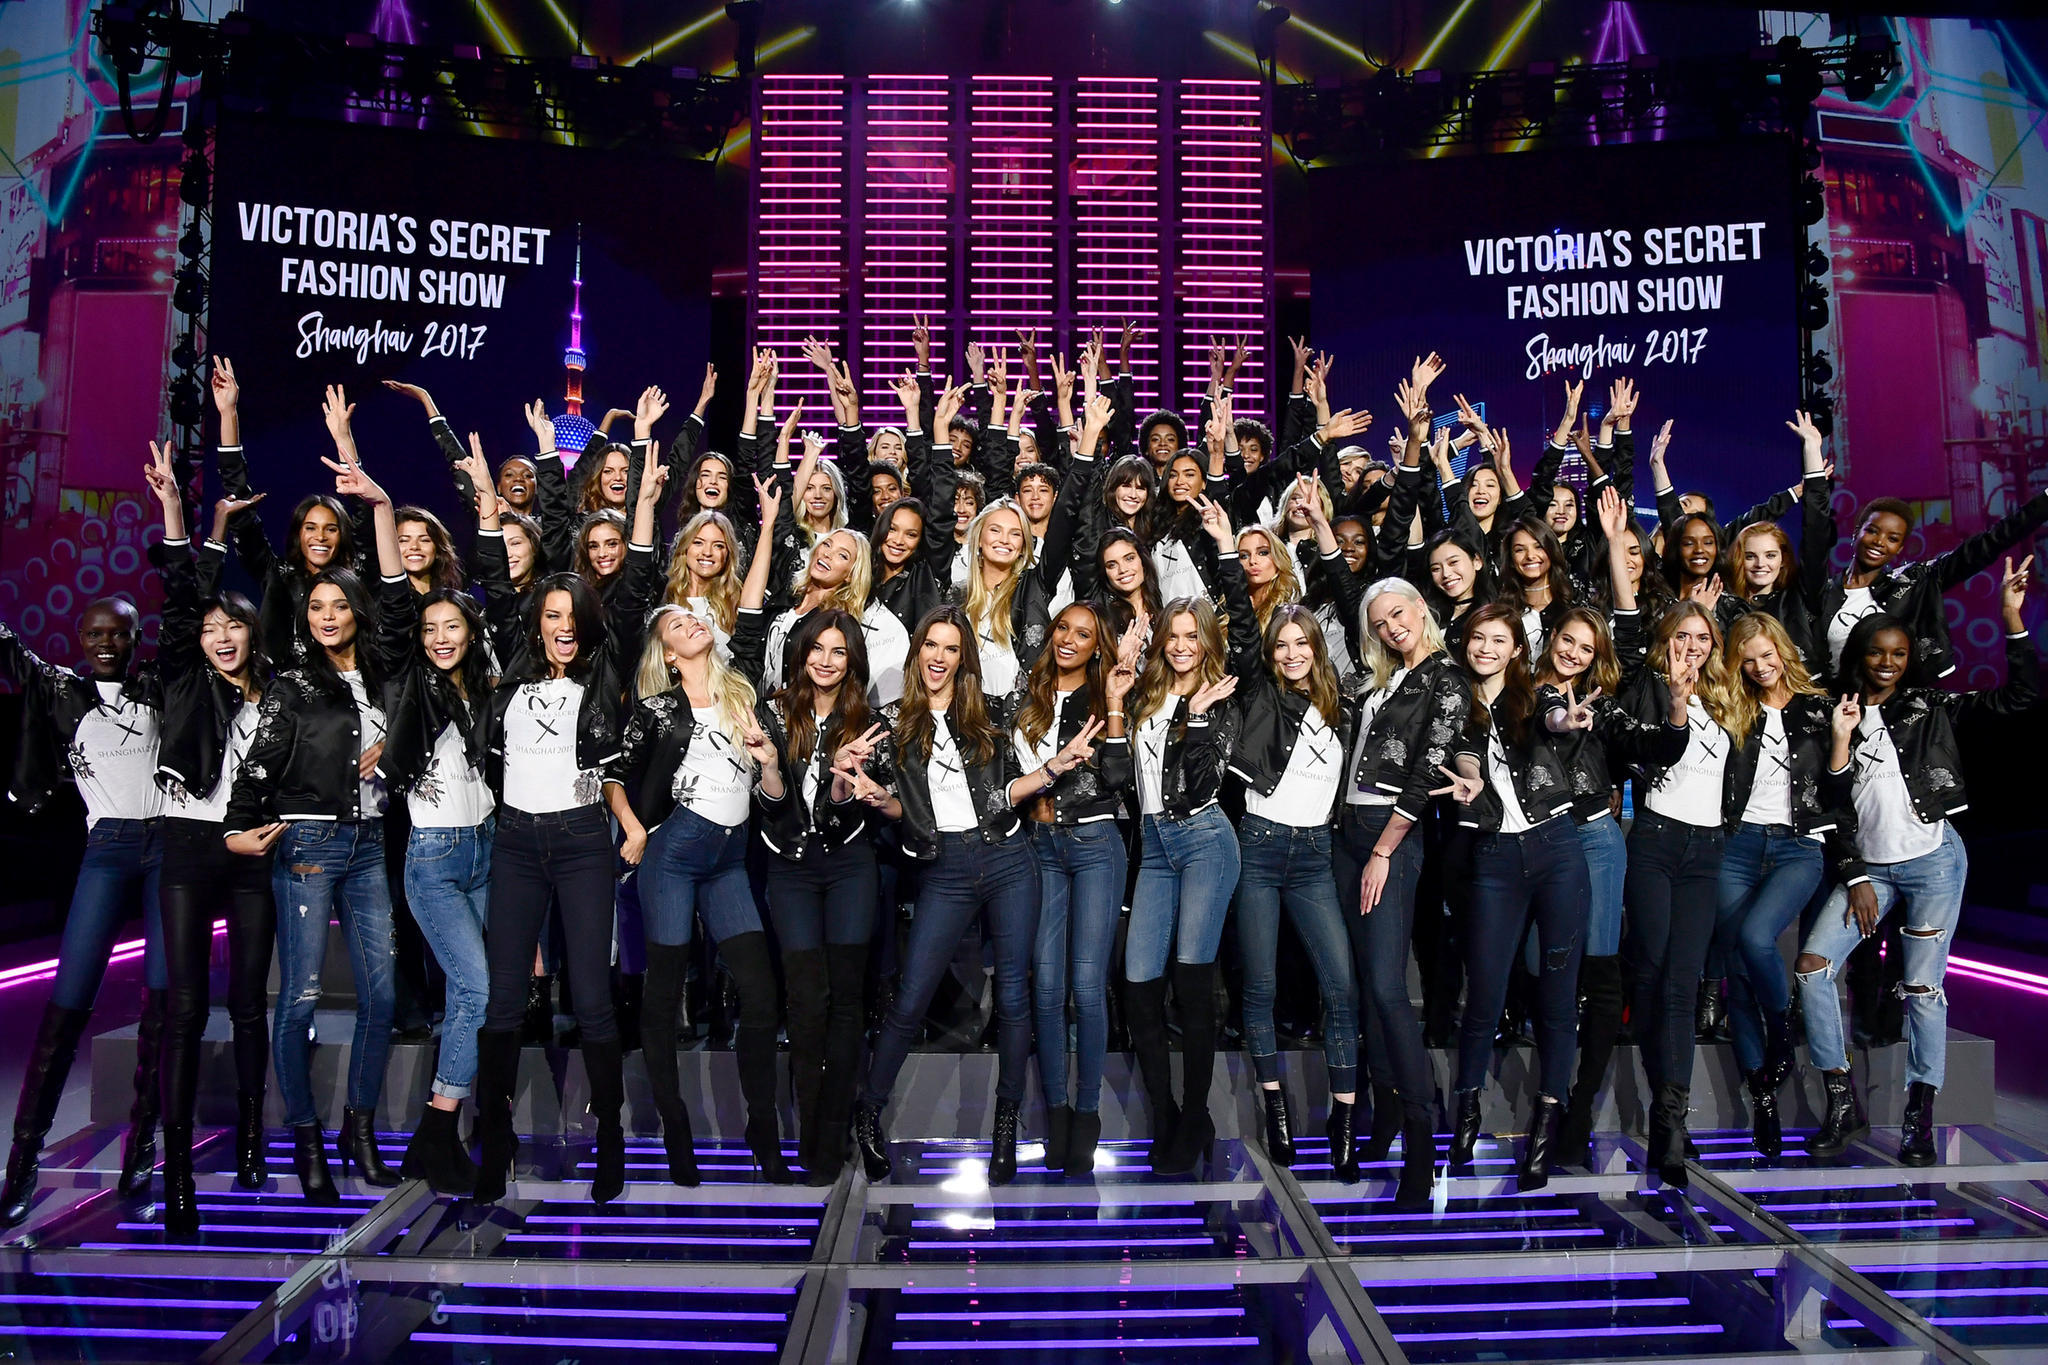 Kontroverse um erste Show von Victoria's Secret in China